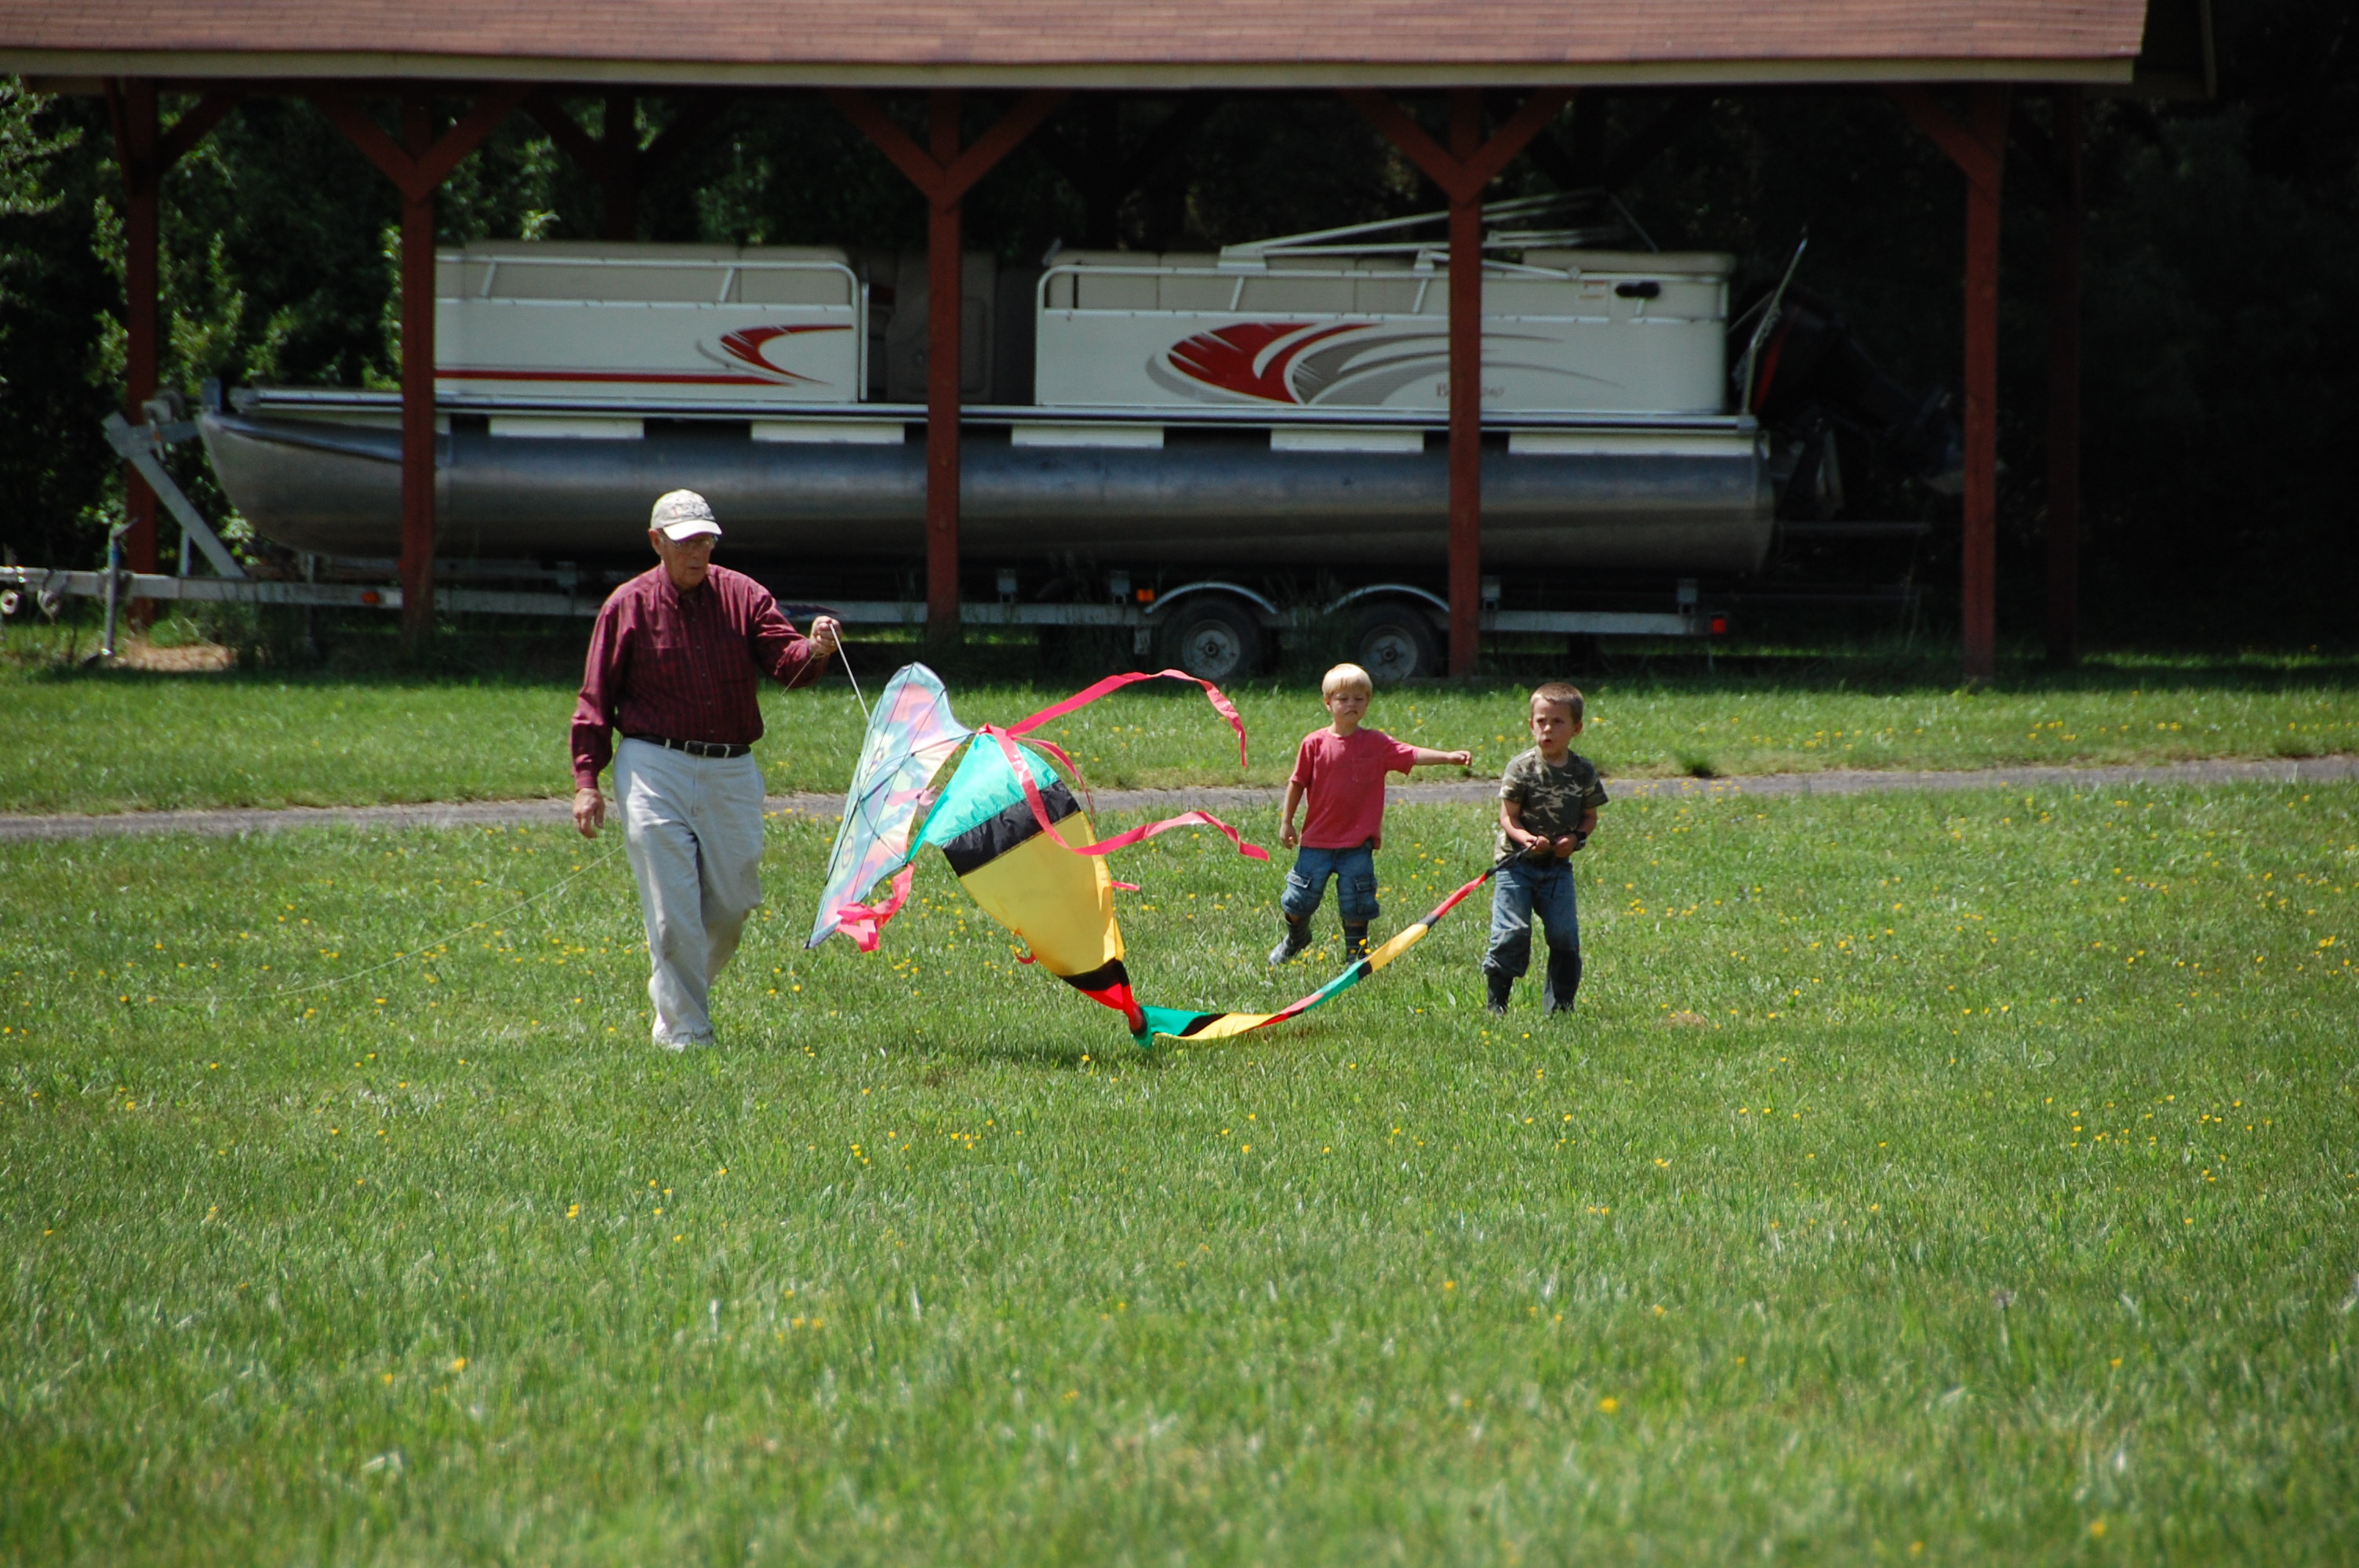 Granddaddy Cotten trying to fly a kite with Layton Cox & Bryant.